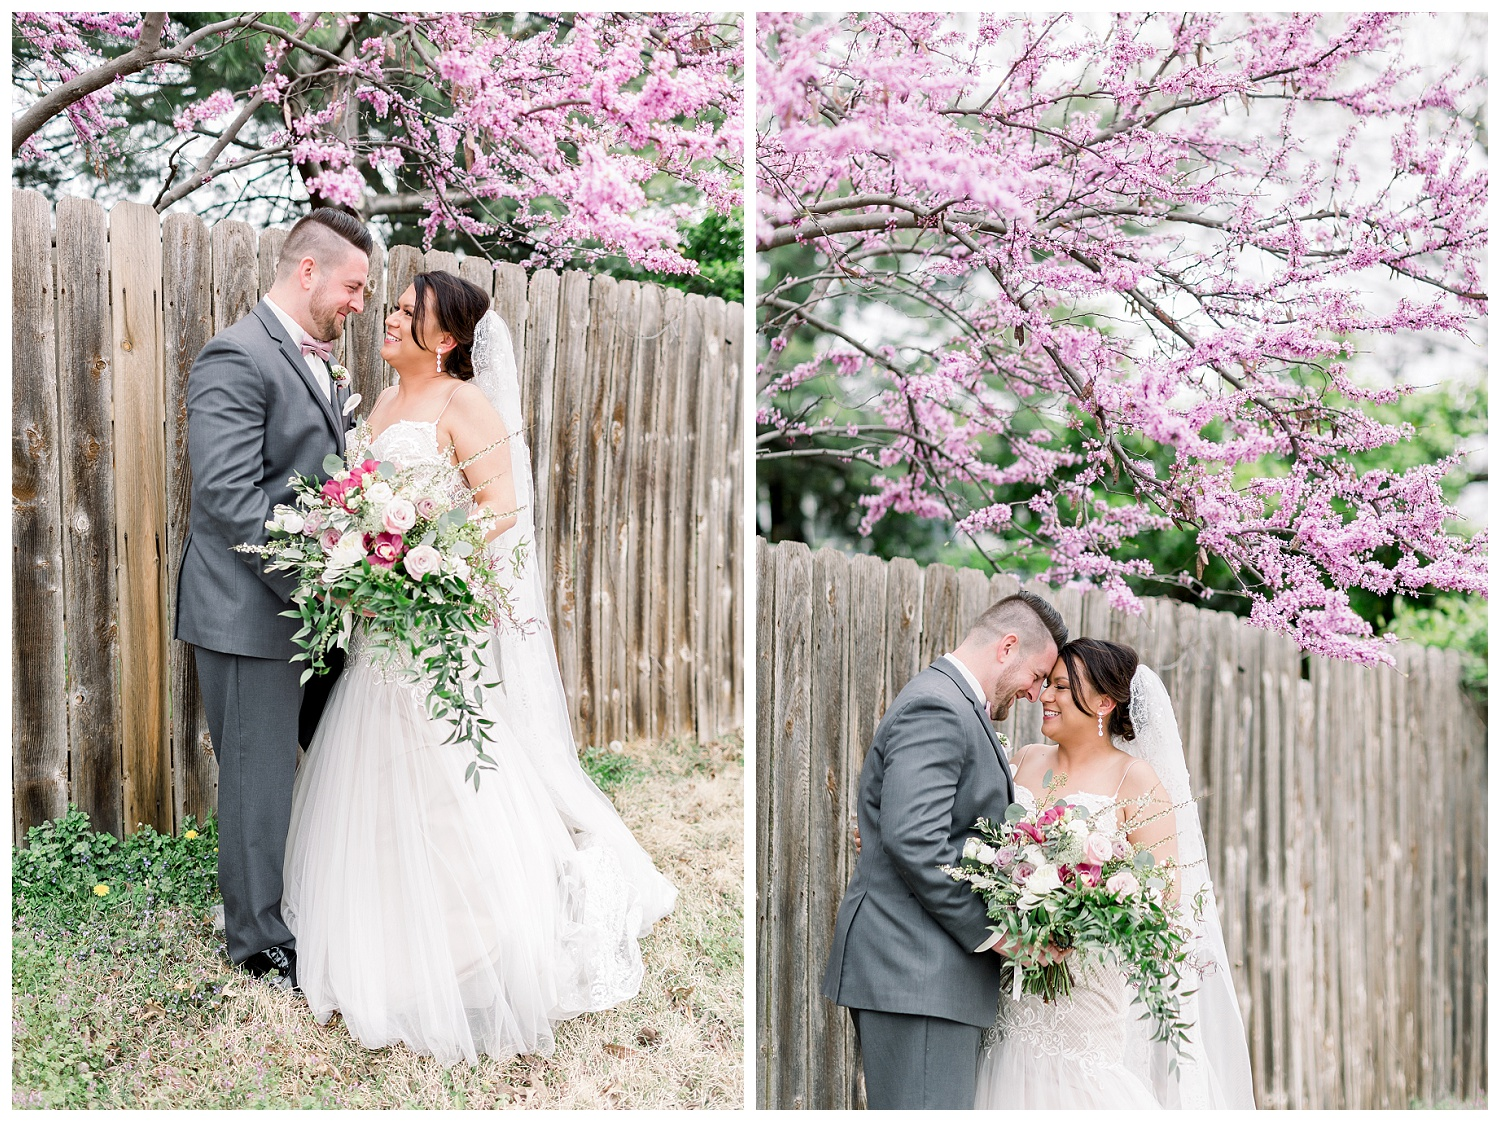 Colorful spring wedding photography inspiration